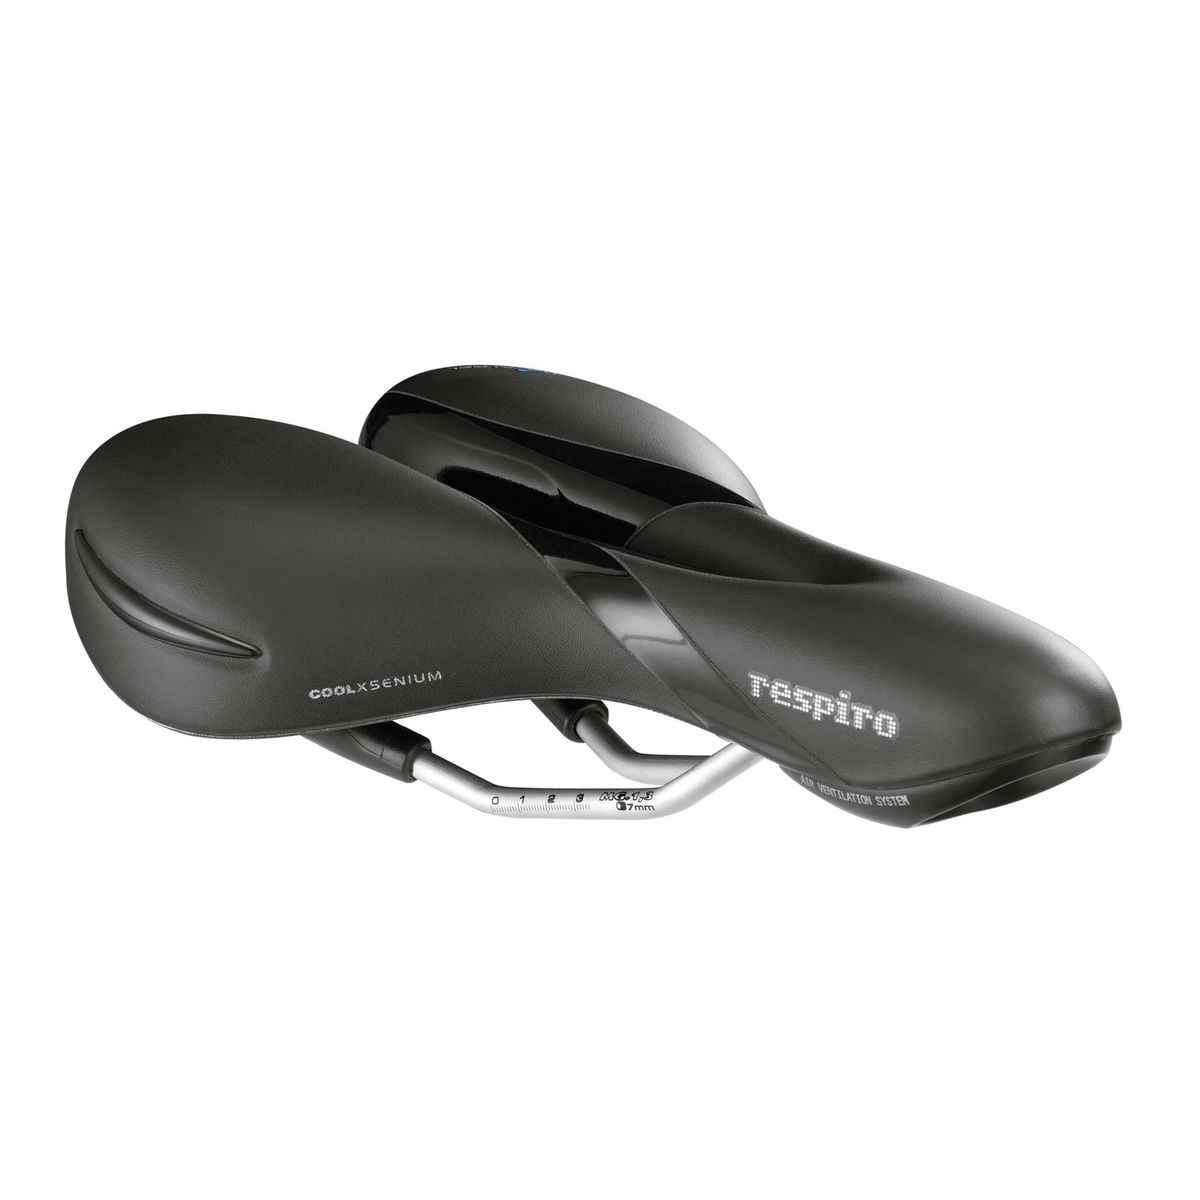 respiro soft moderate men's saddle